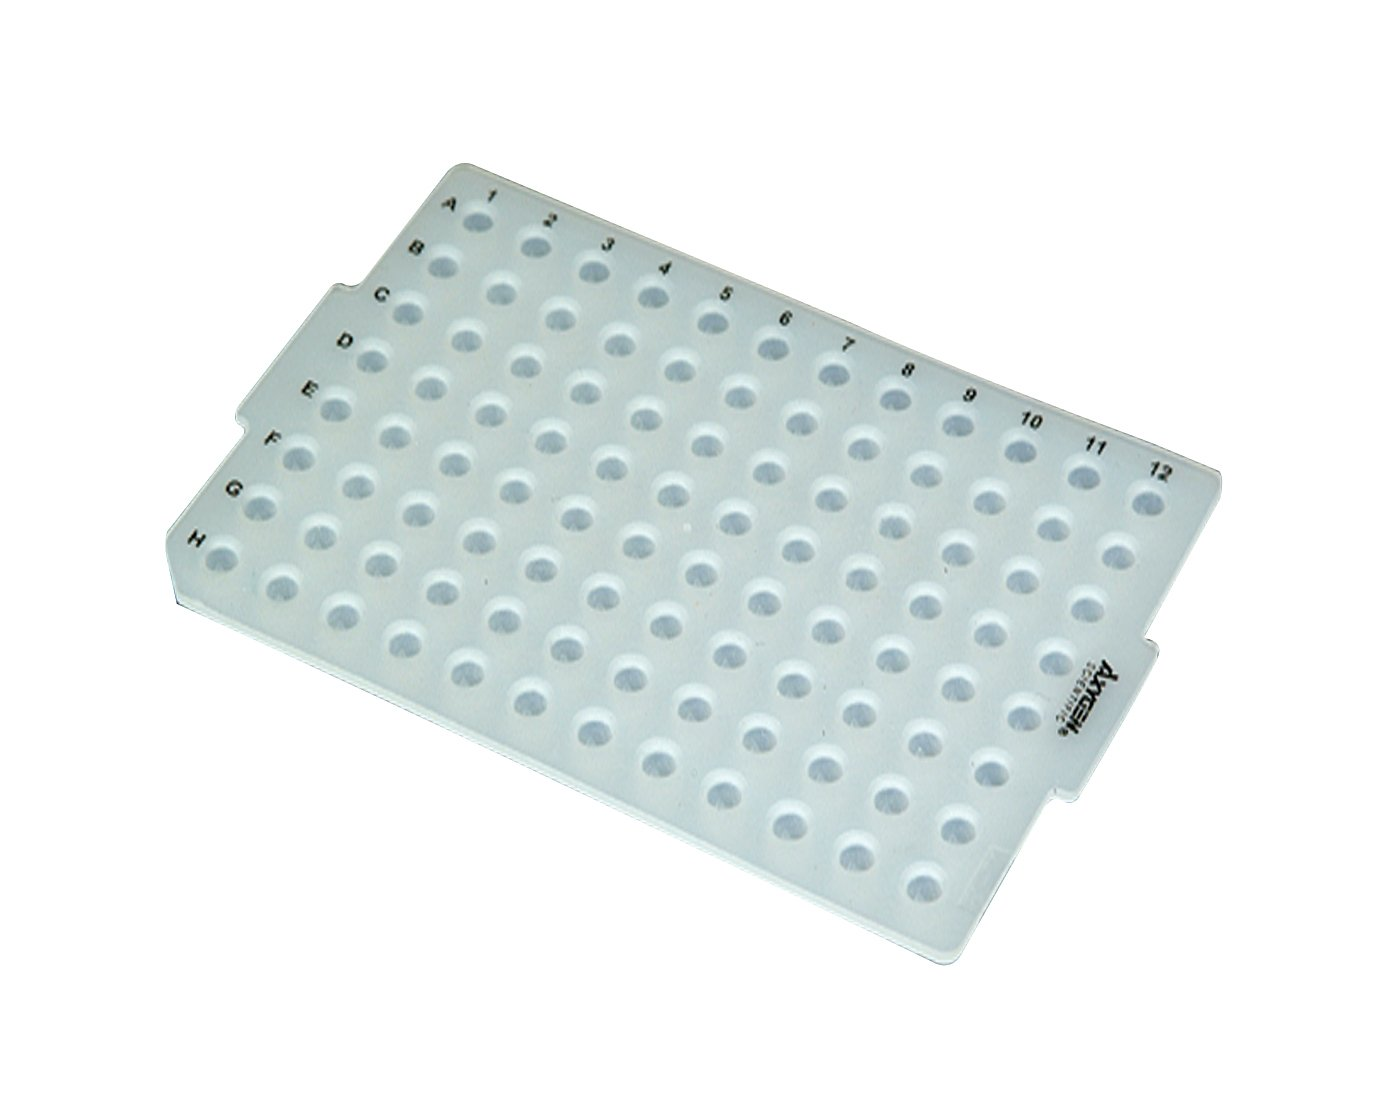 96-well PCR Plate Silicone Cap Silicone Sealing Mat for 96-well PCR plate Non-sterile(Pack of 10)